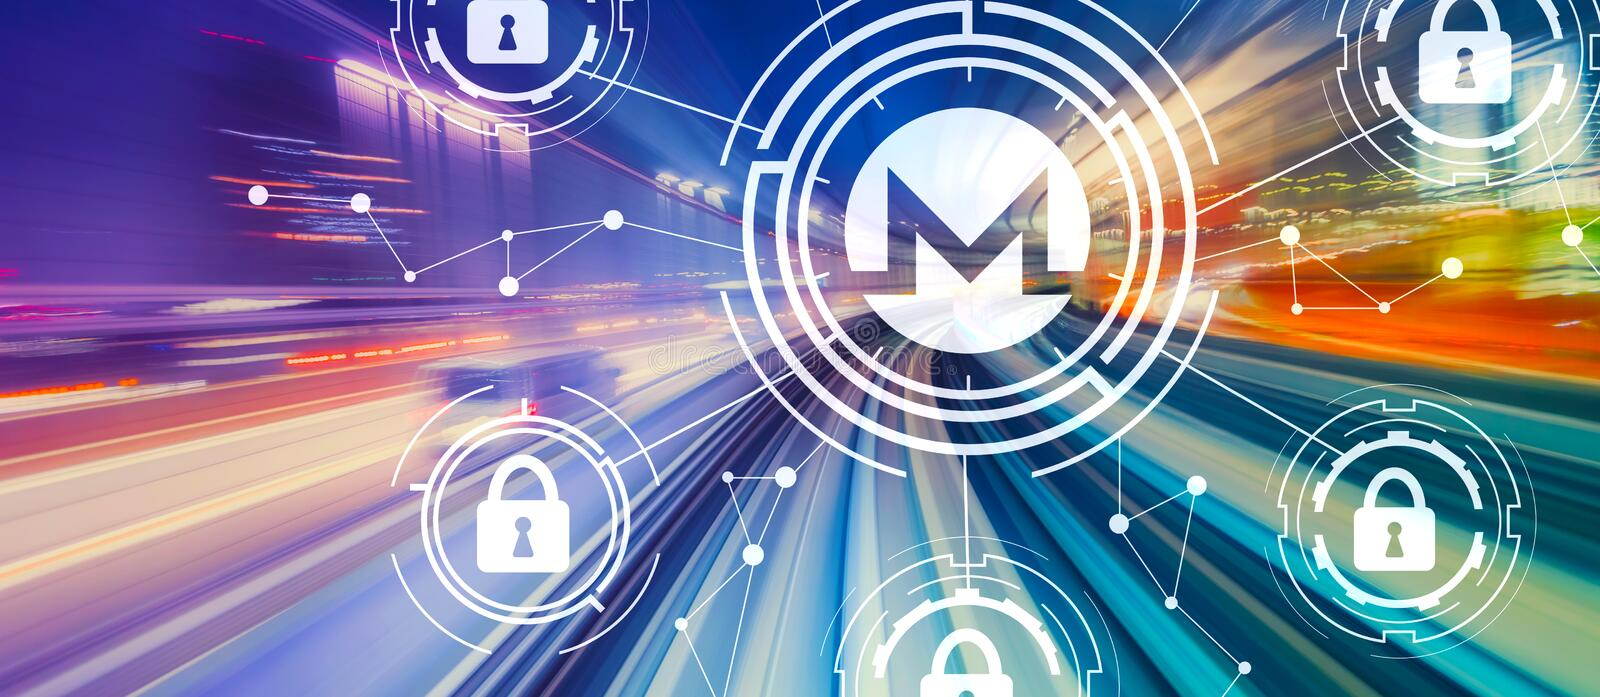 Monero cryptocurrency security theme with high speed motion blur stock image